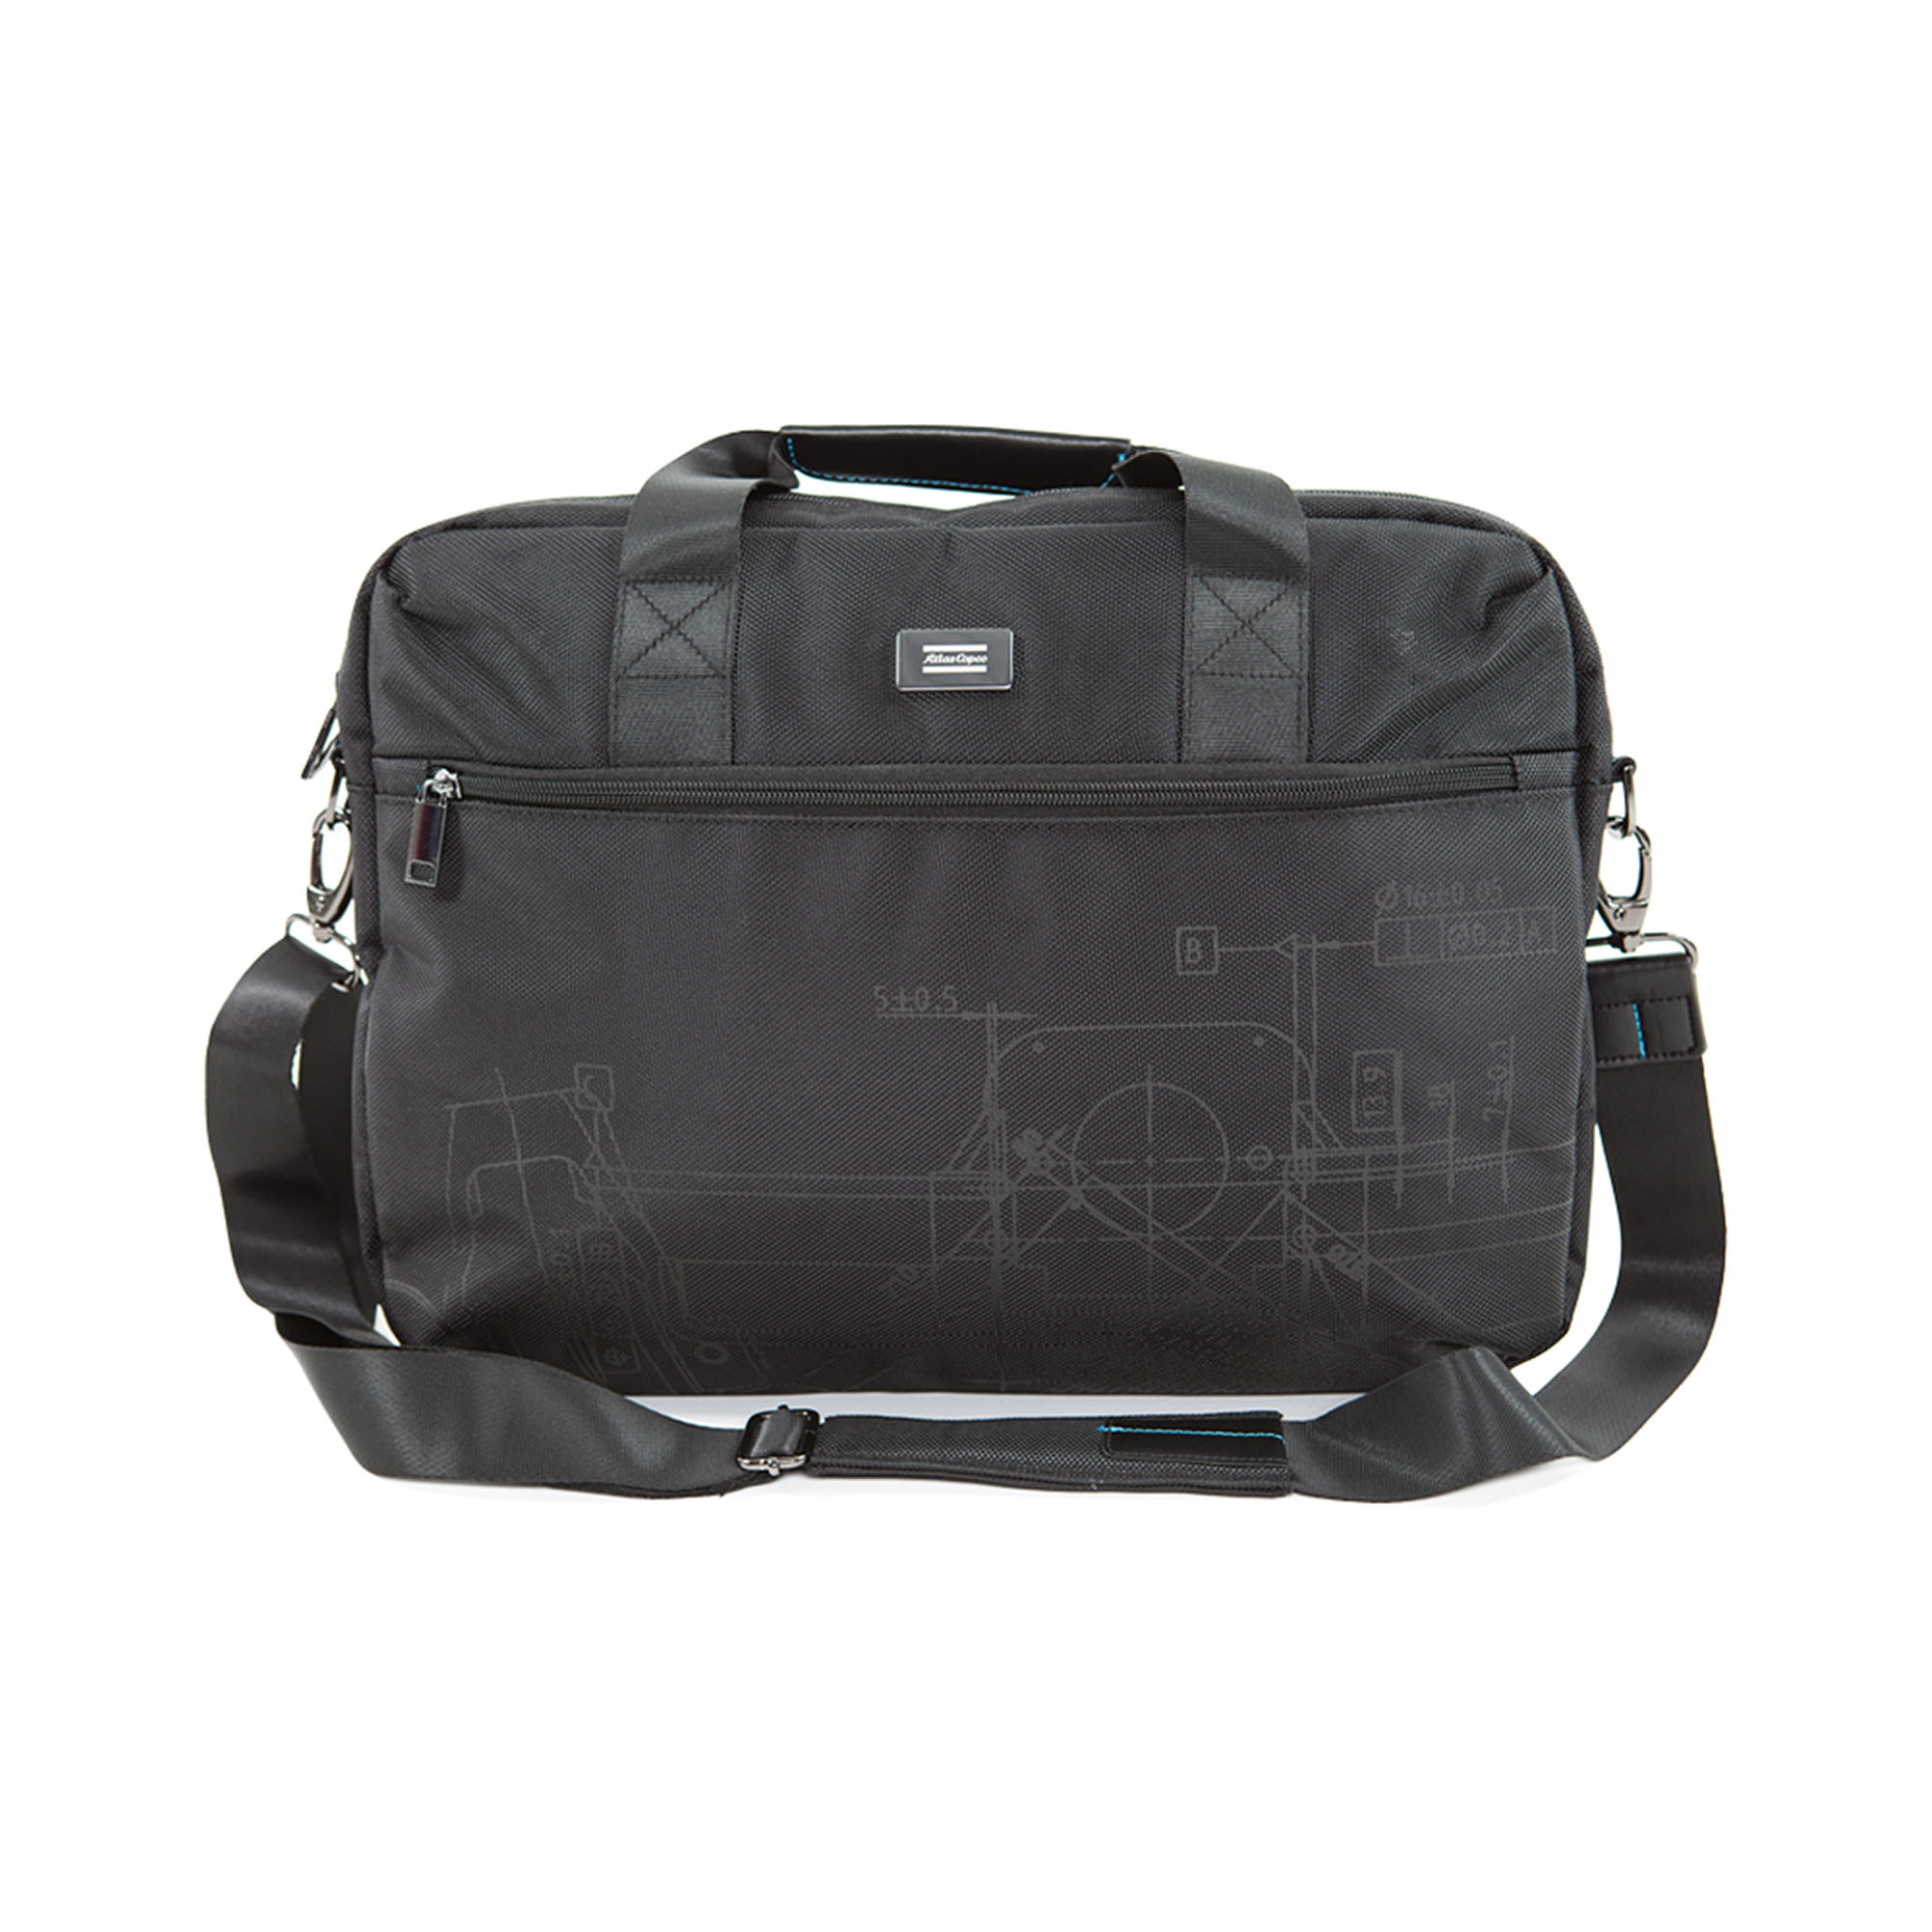 A stylish and slim executive bag with Blueprint pattern designed to carry your laptop, documents, notebook and other small essentials in style. The laptop compartment provides all-round protection and several easy-access pockets let you organize the other things you have with you. You can attach or detach the shoulder strap. On the back of the bag, there is a smart magnetic shoulder strap fastener and a function for hanging the bag securely on a travel trolley.